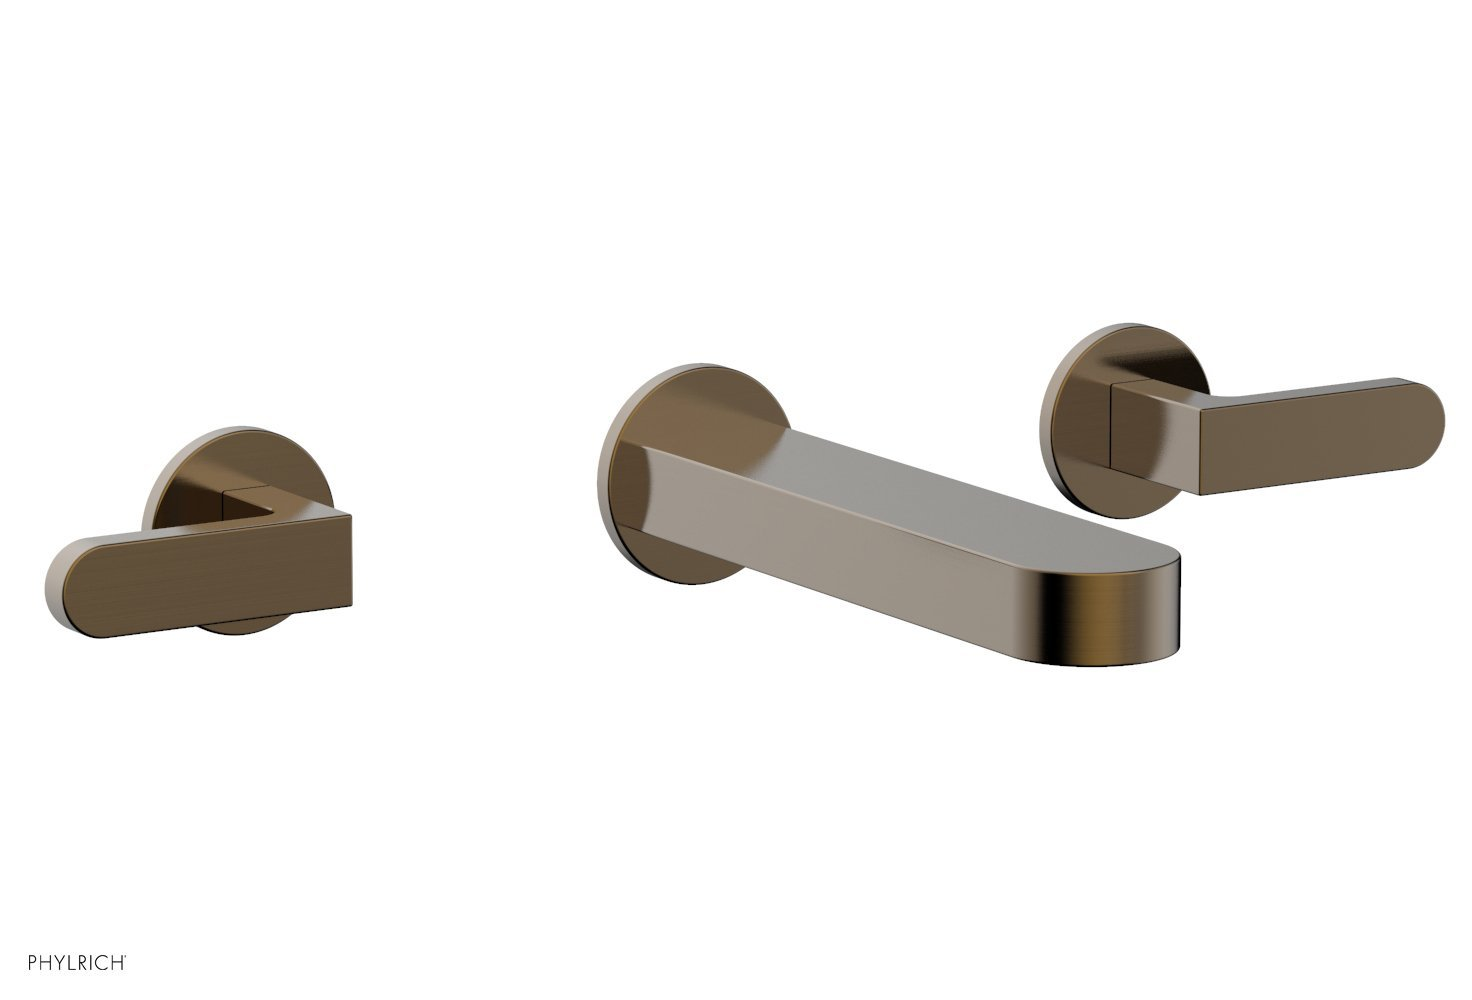 Phylrich 183-12-047 ROND Wall Lavatory Set - Lever Handles - Antique Brass